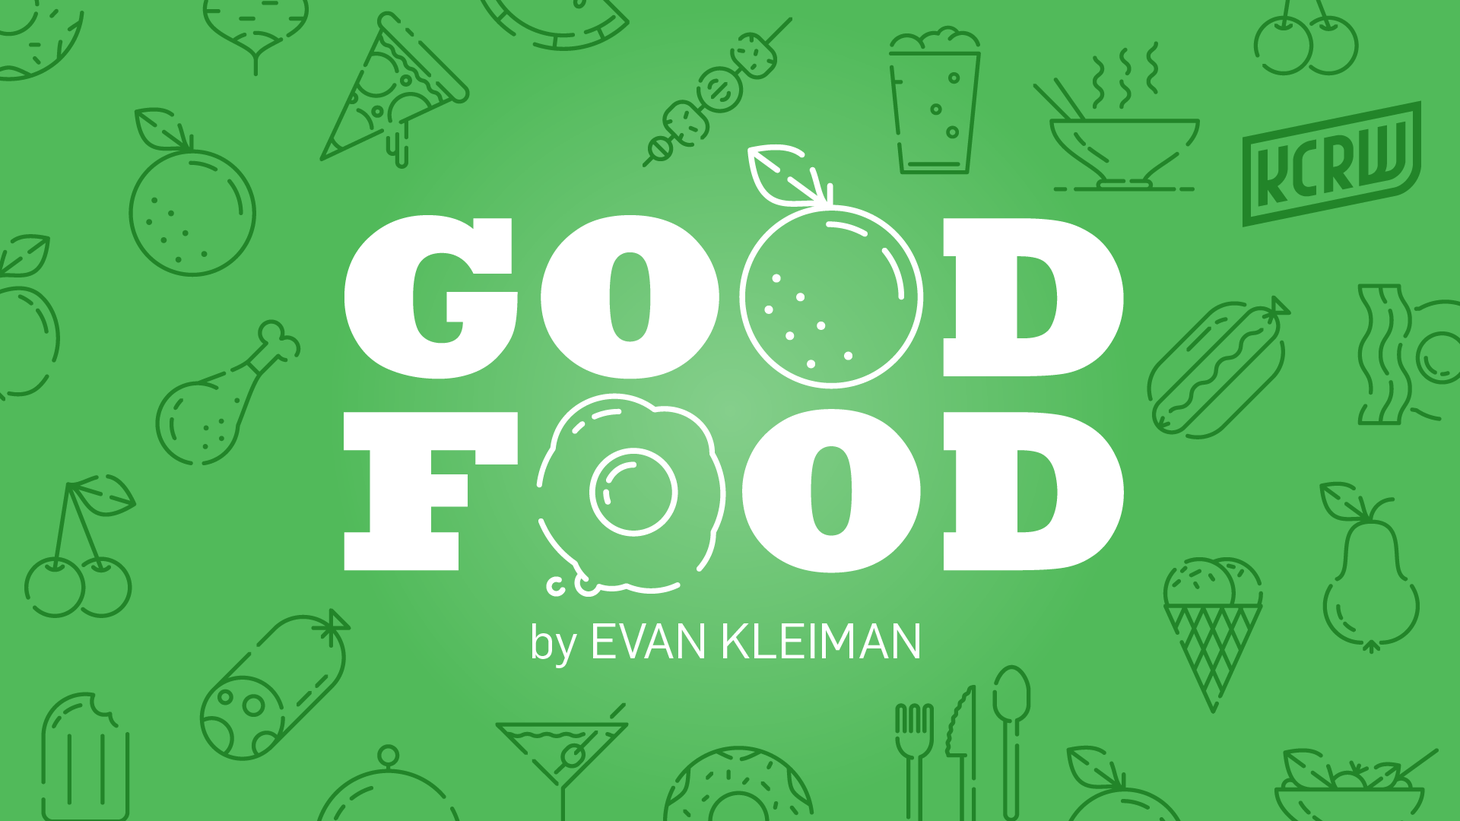 In our December edition of KCRW's Good Food podcast, host Evan Kleiman illustrates the fine art of brining.  Watch for cooking tips, techniques and some of her favorite places to eat and visit around Los Angeles.